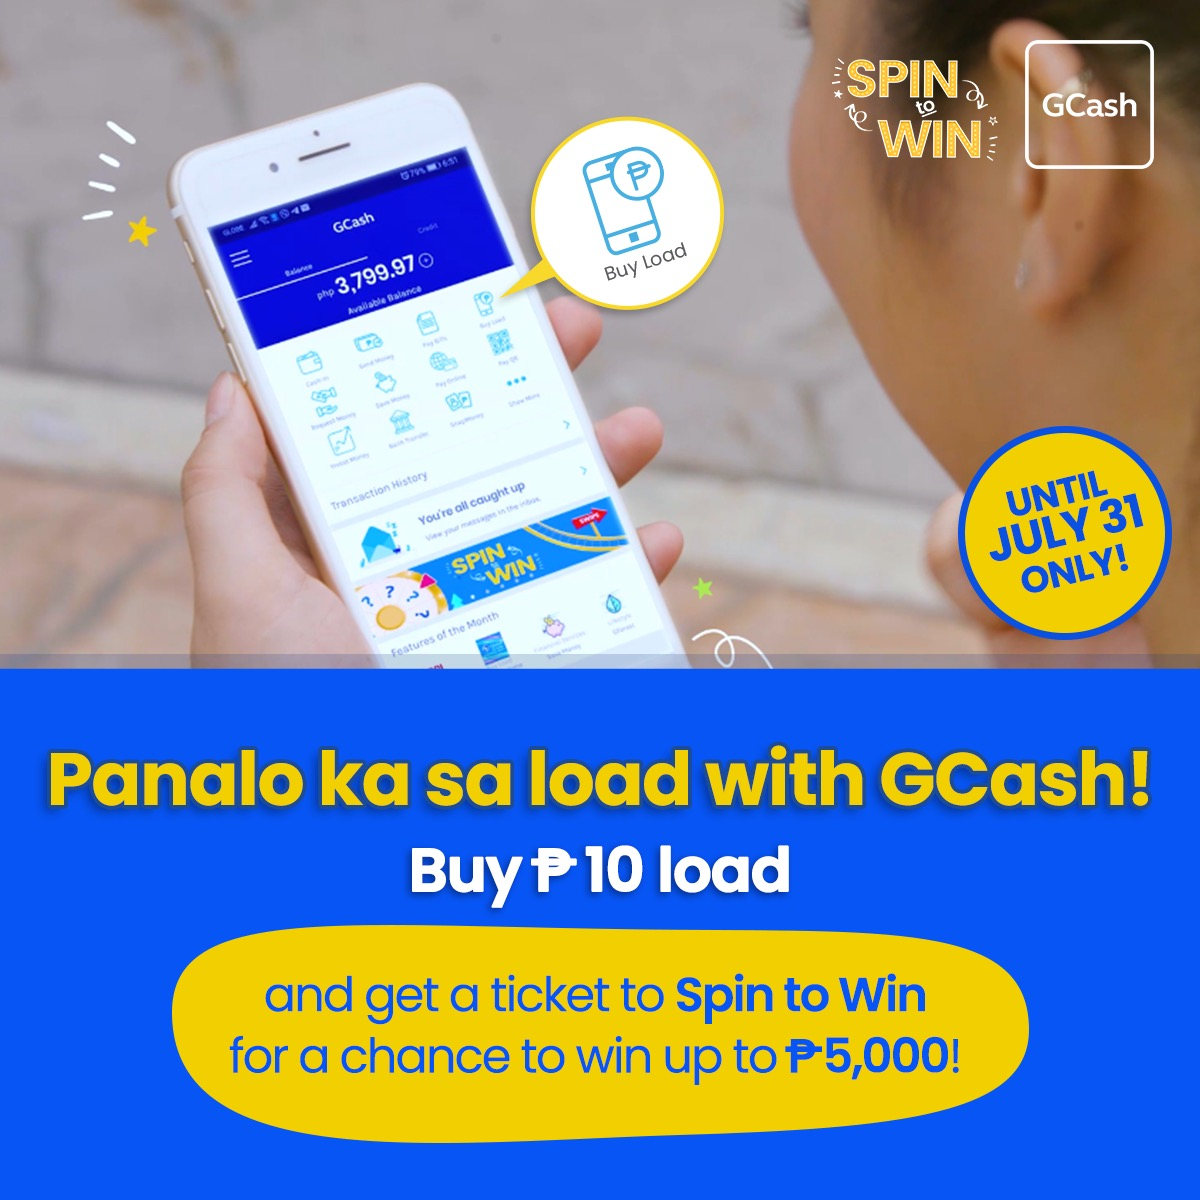 Spin to Win! - GCash